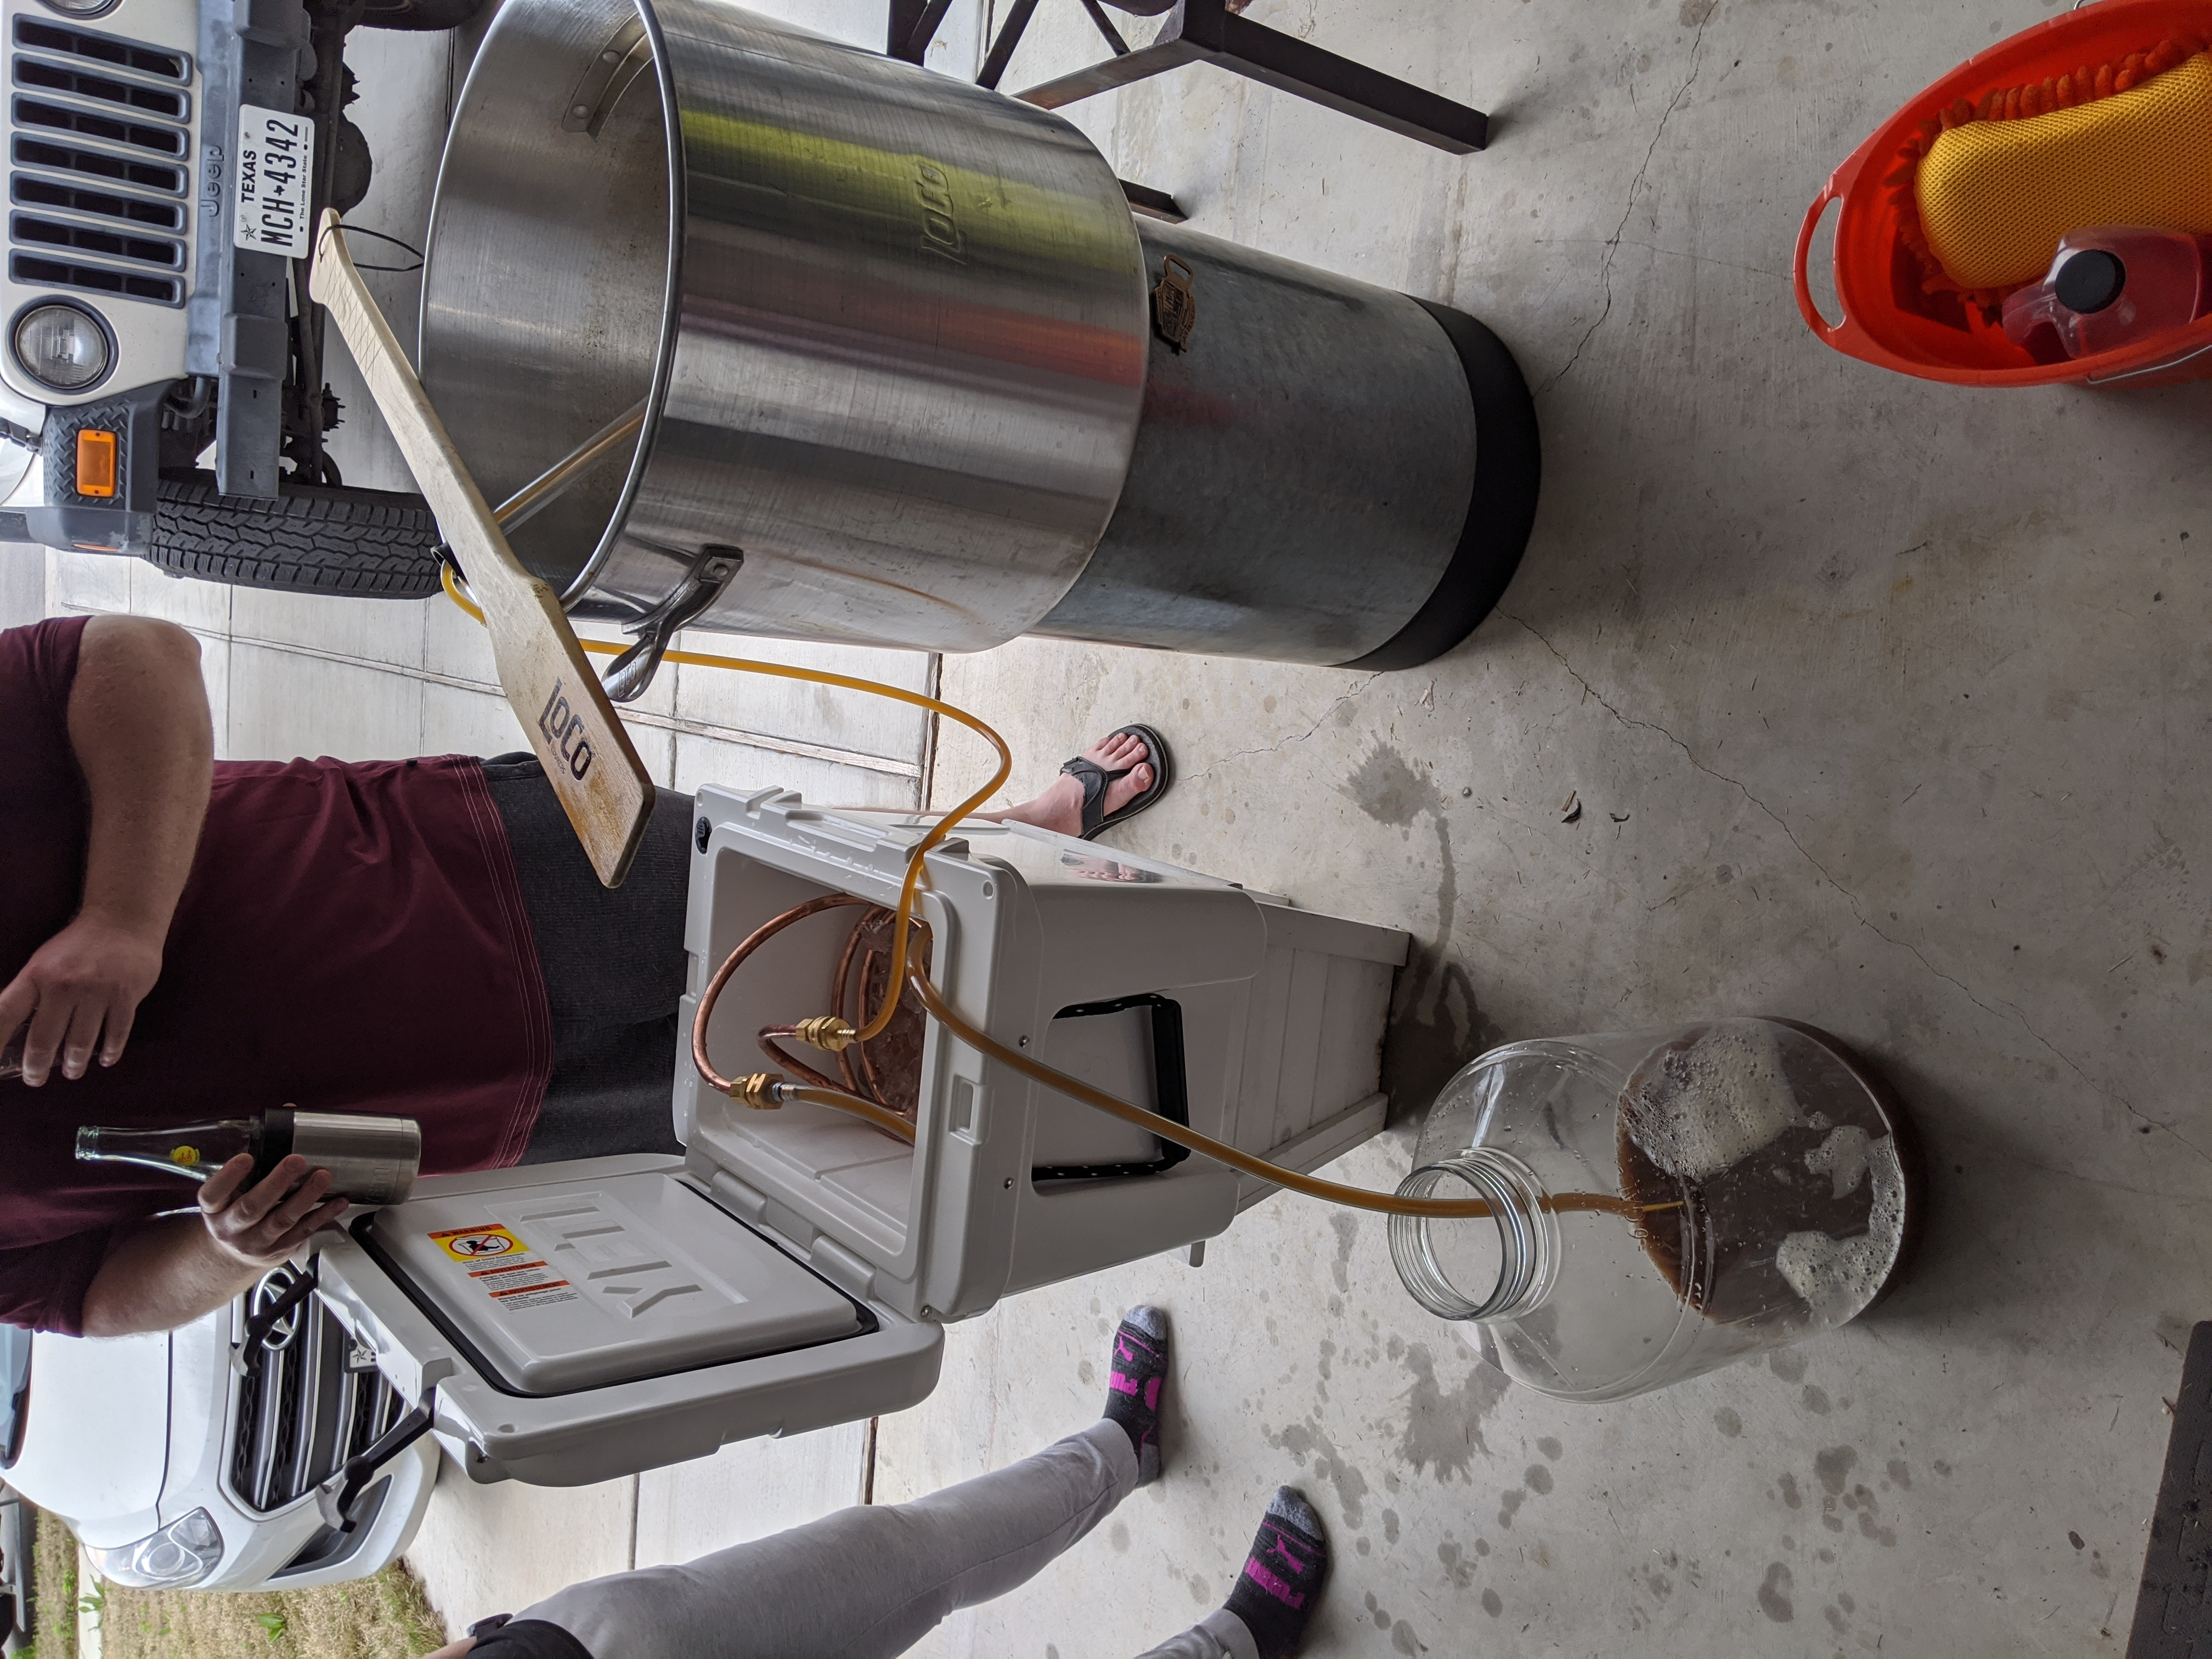 Wort chilling using our fancy copper chiller coil. In my opinion, this is our best equipment purchase so far.